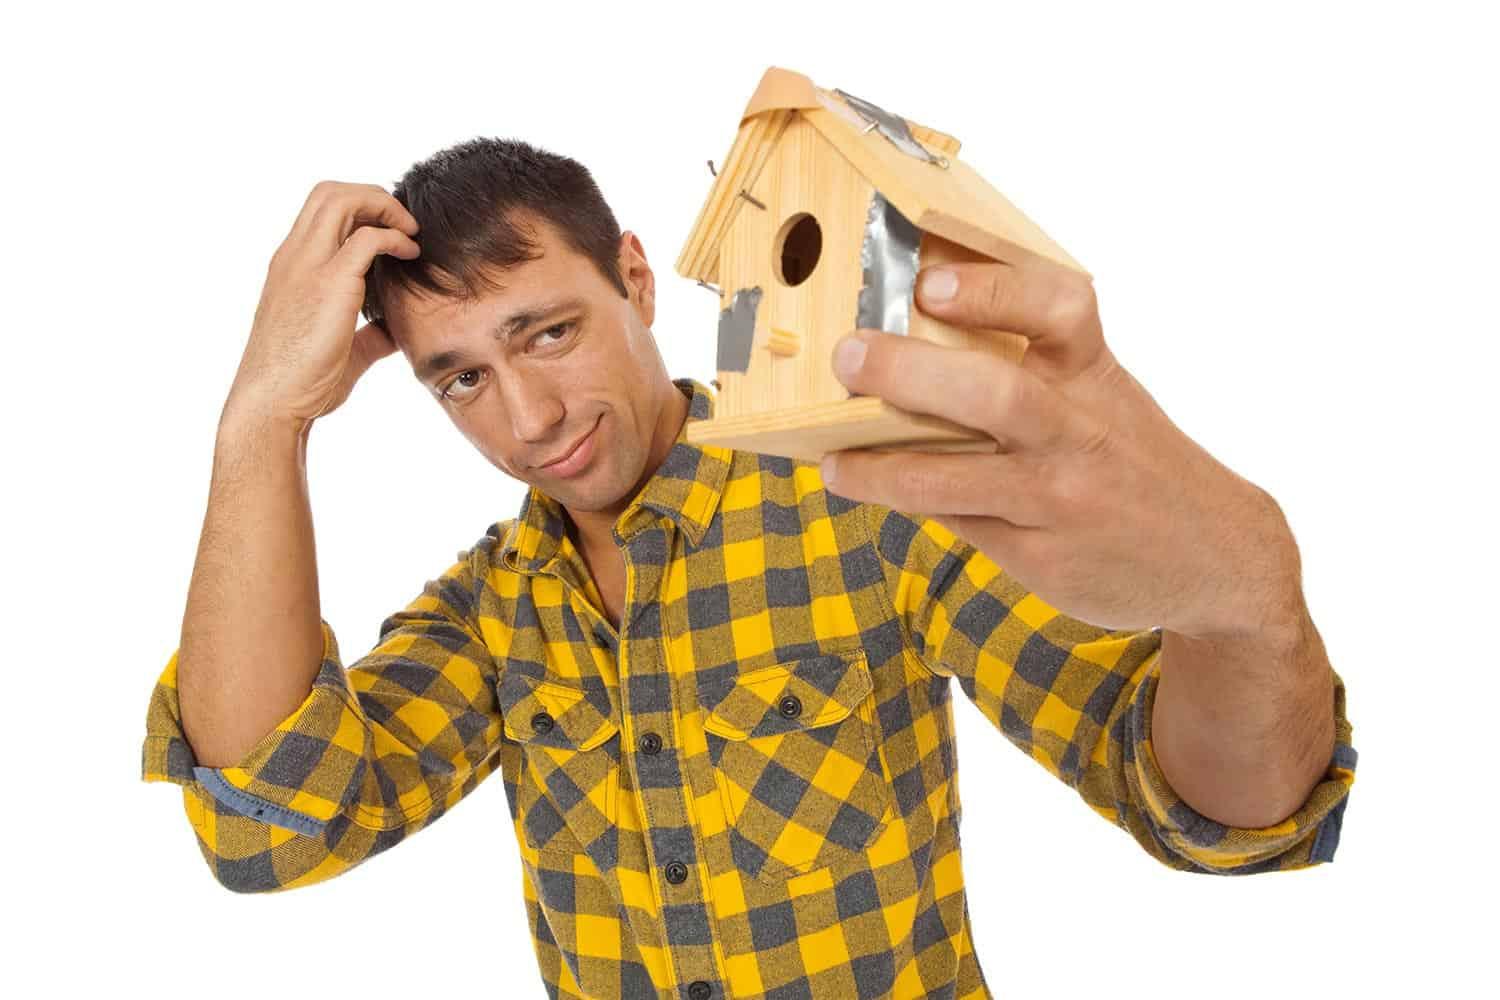 Man holds a birdhouse put together with bent nails and duct tape